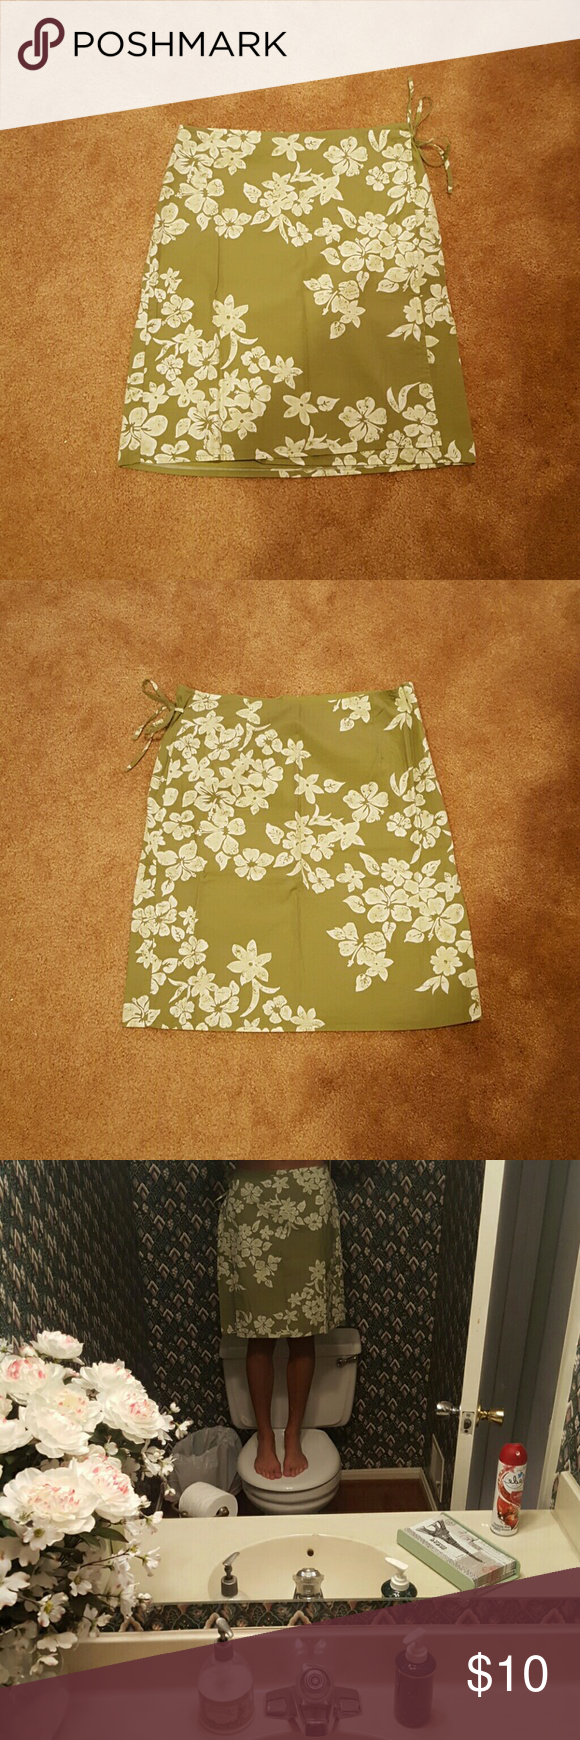 Selling this Hawaiian style wrap around skirt on Poshmark! My username is: rookiemaster. #shopmycloset #poshmark #fashion #shopping #style #forsale #American Eagle Outfitters #Dresses & Skirts